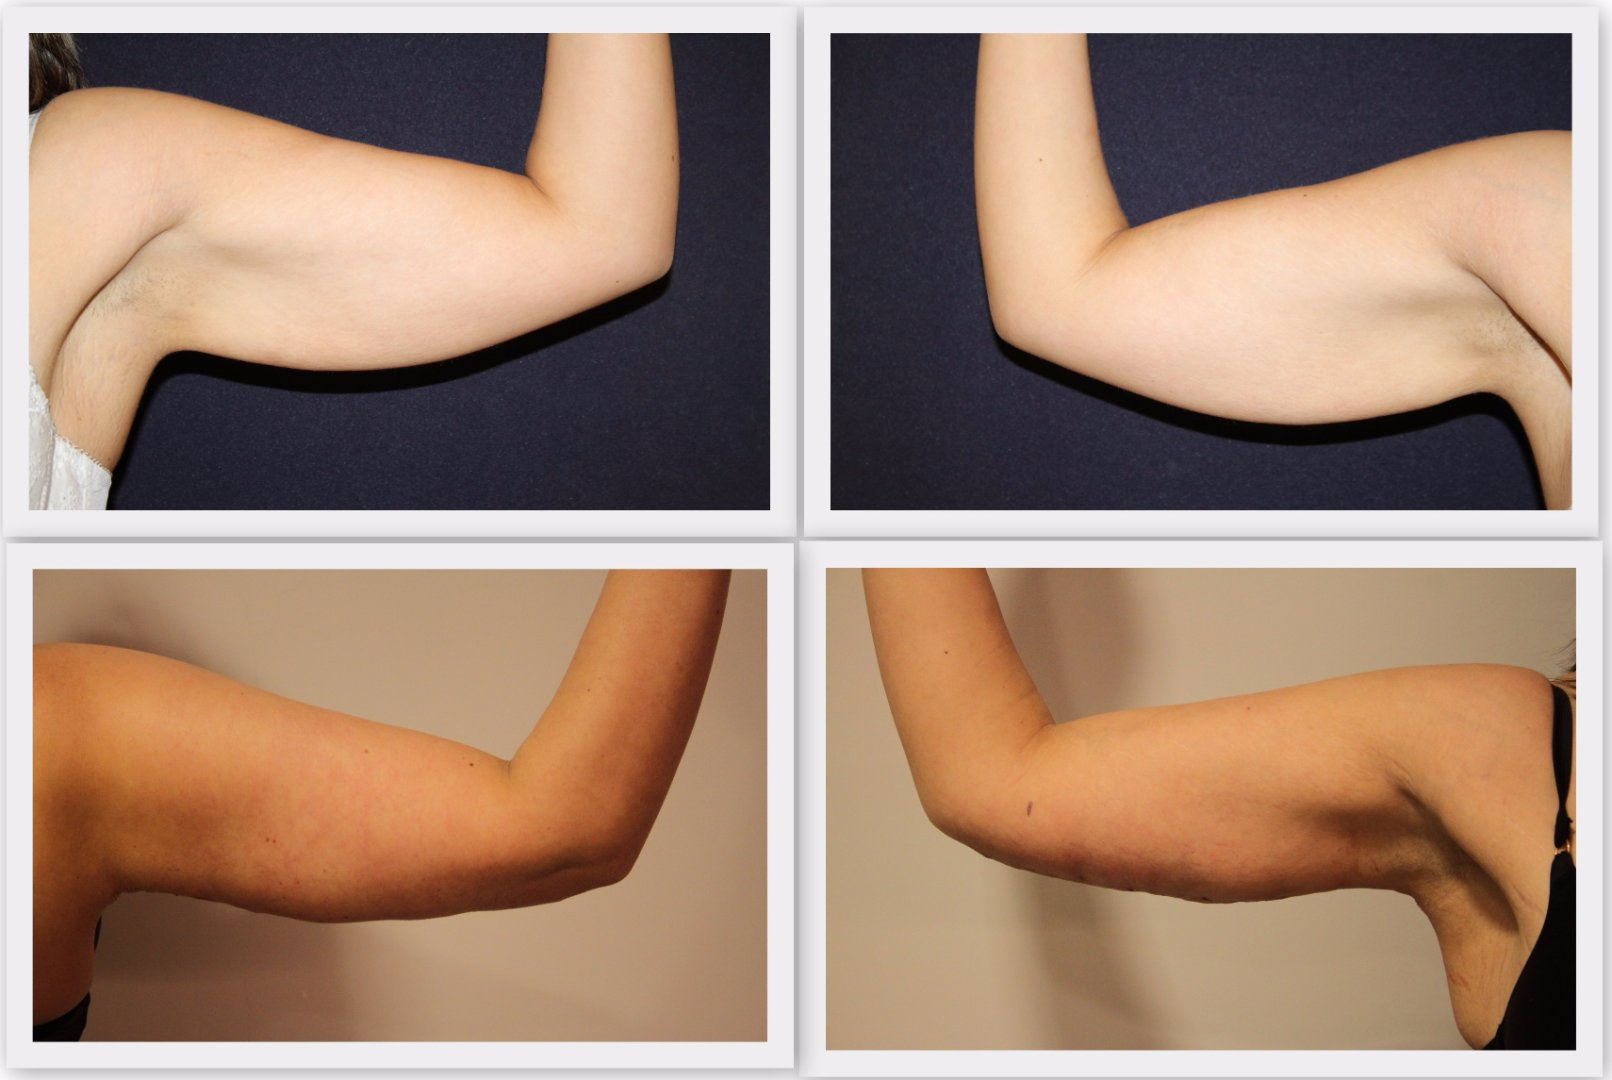 Upper arm correction Dr. Nelissen - Global Care Clinic